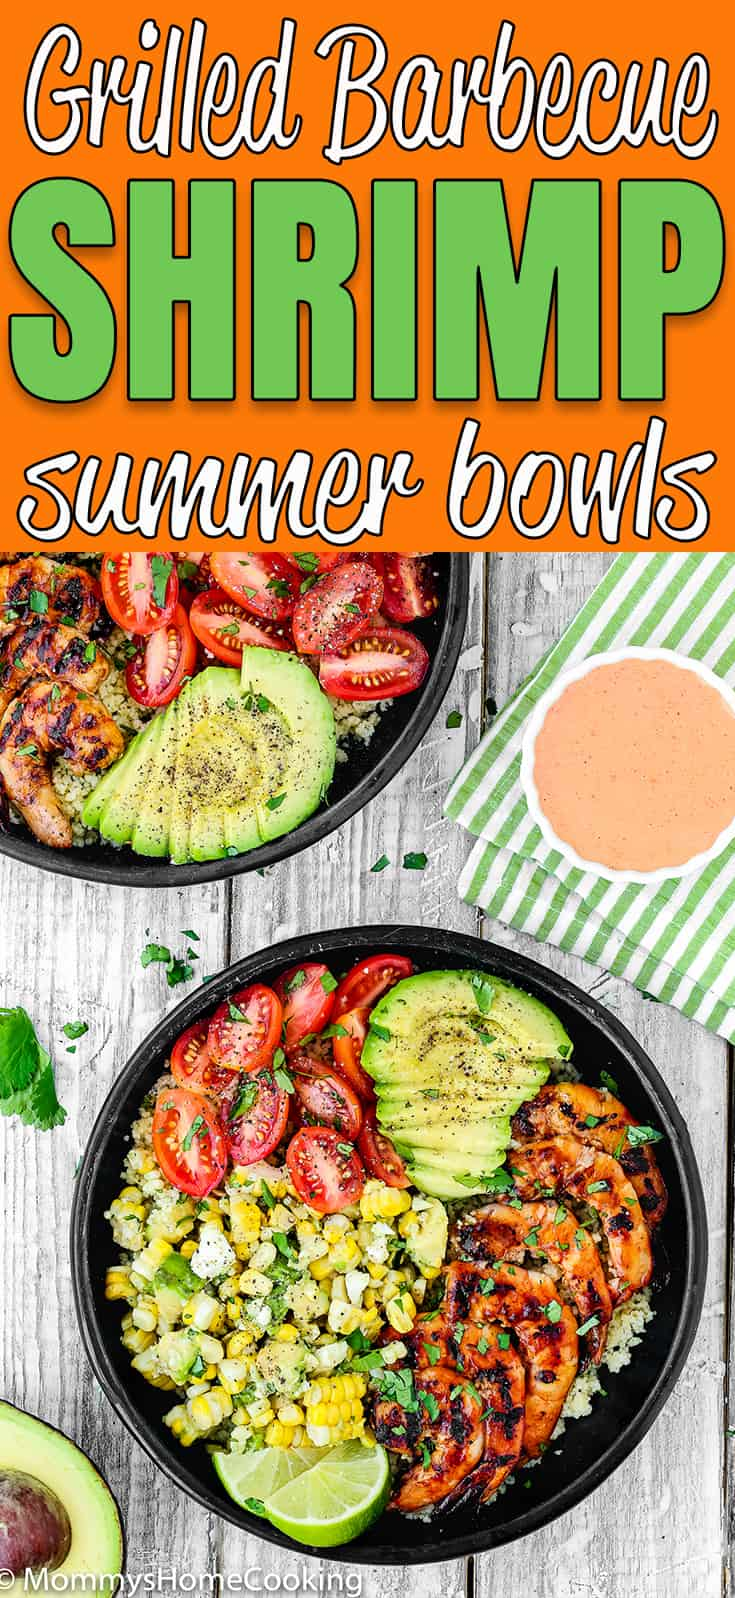 This Grilled Barbecue Shrimp and Corn Avocado Salad Bowls recipe is delicious, incredibly tasty and ridiculously easy to make! Perfectly tender and juicy jumbo shrimp glazed with barbecue sauce, couscous, corn avocado salad, tomatoes, make a perfect summer meal, don't you think? https://mommyshomecooking.com